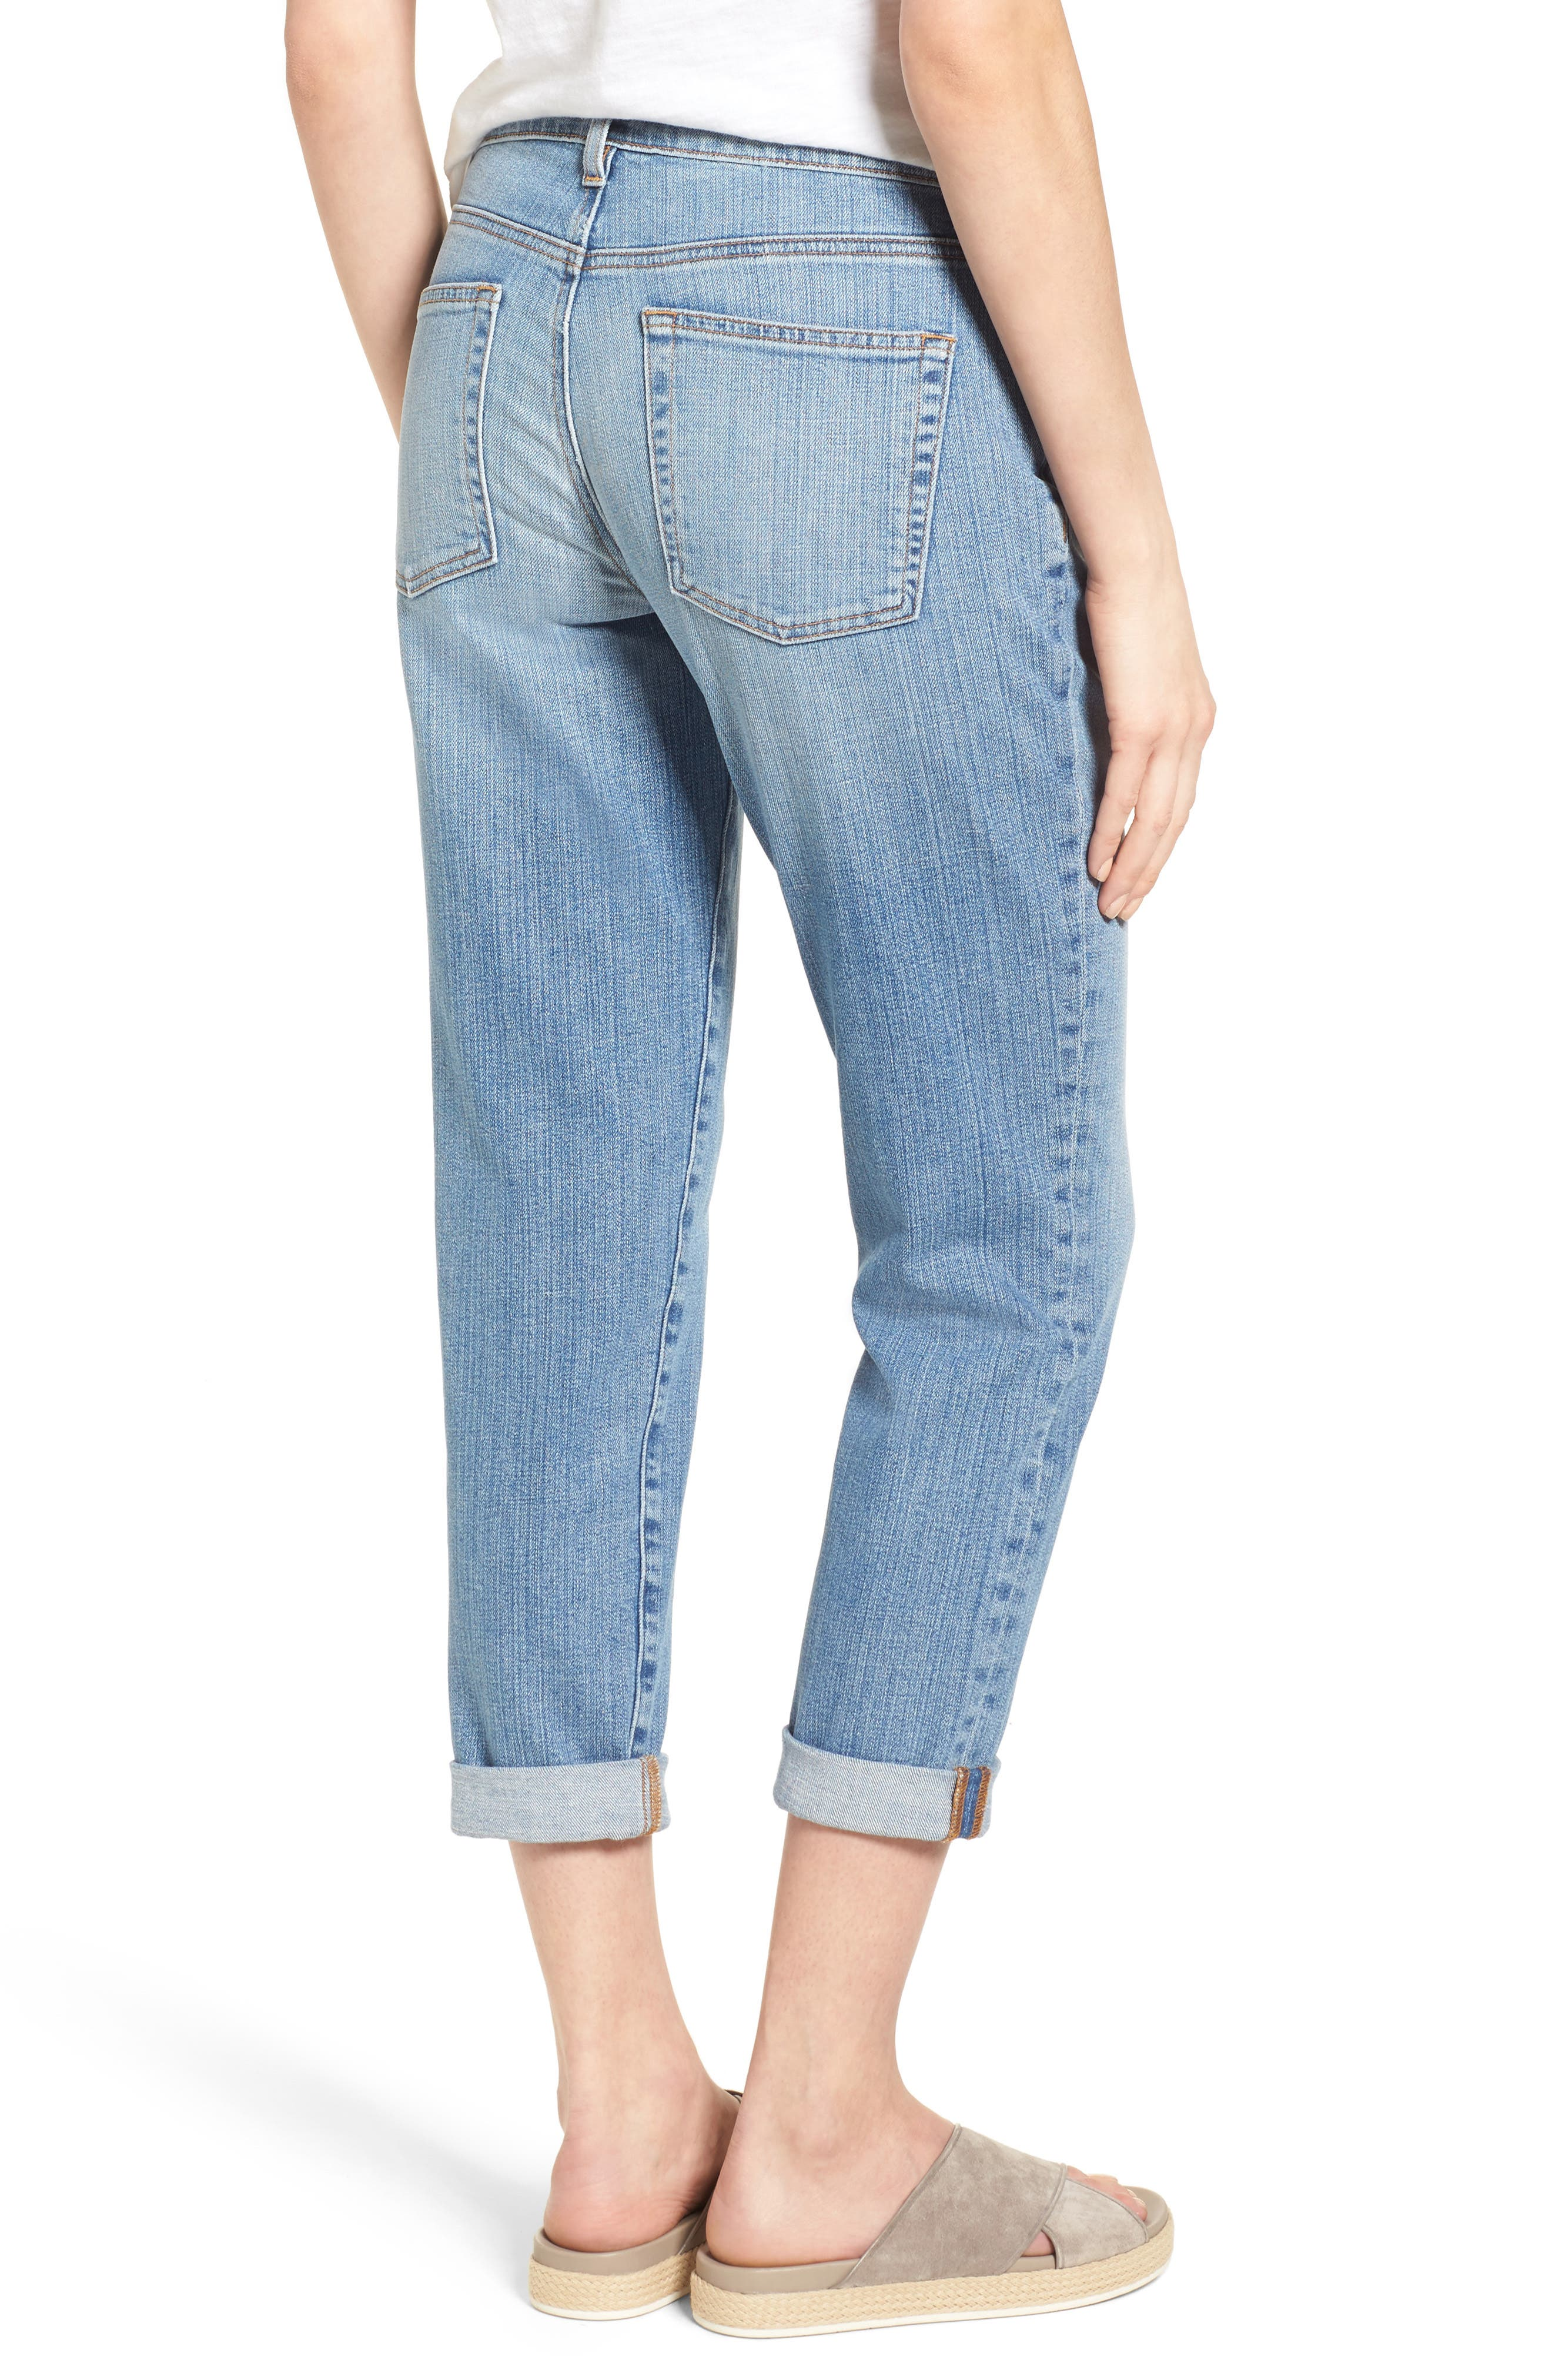 Organic Cotton Boyfriend Jeans,                             Alternate thumbnail 2, color,                             SKY BLUE